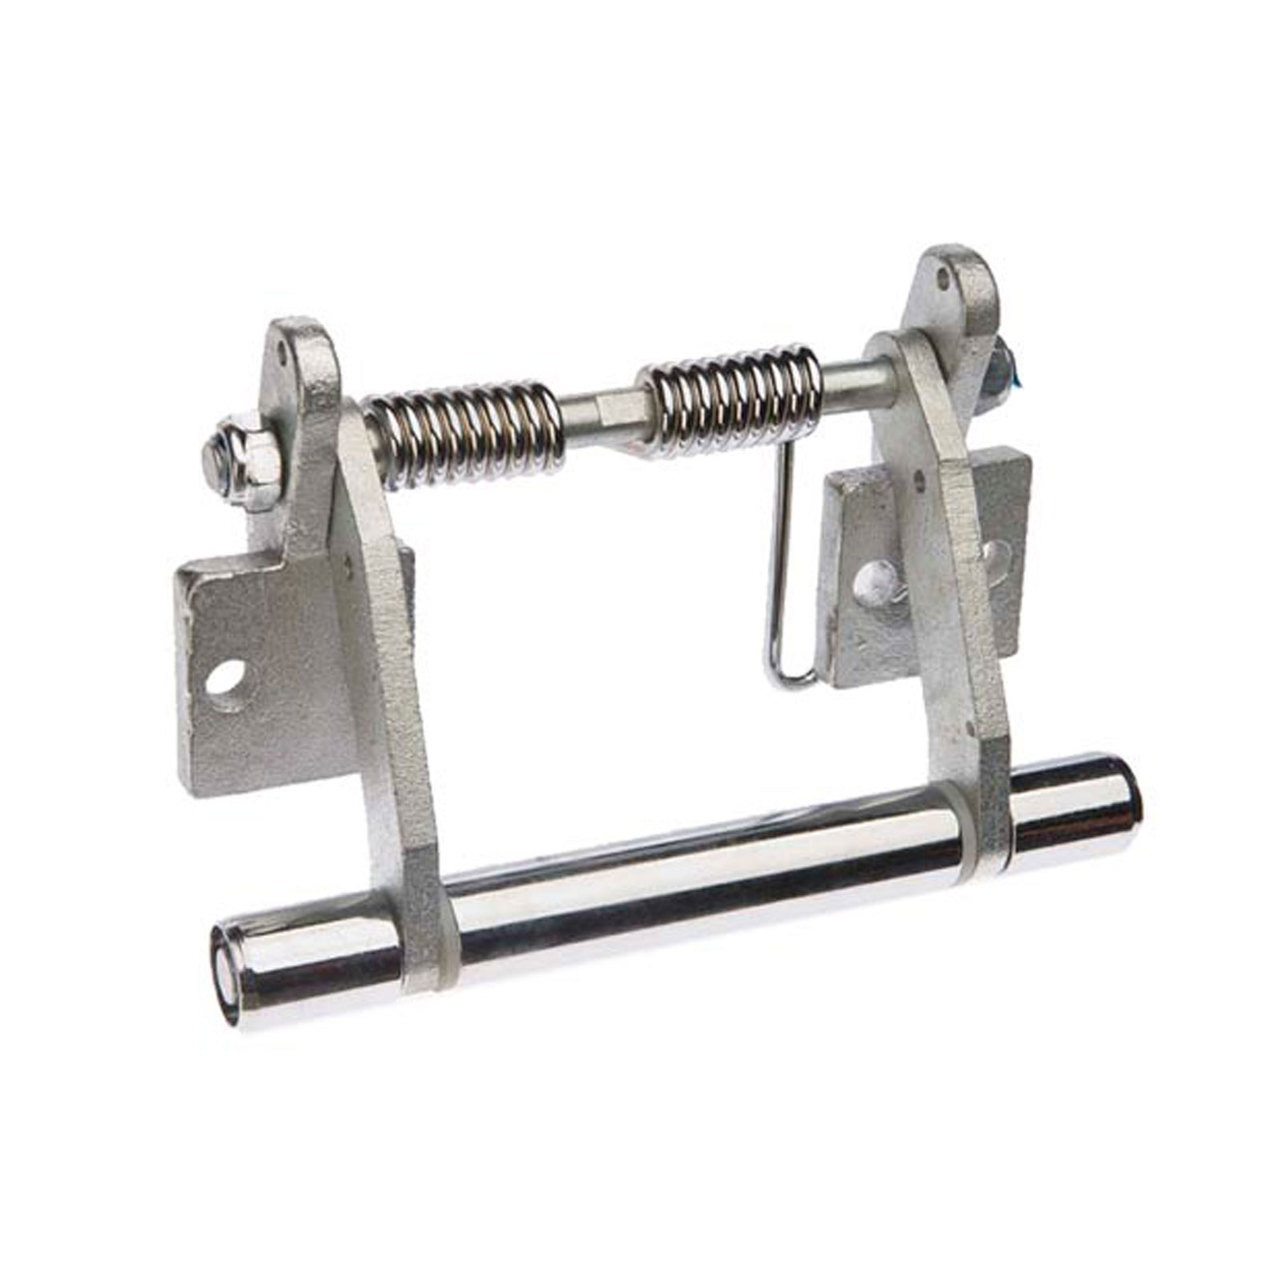 WIRE ROPE TENSIONER INCLUDED